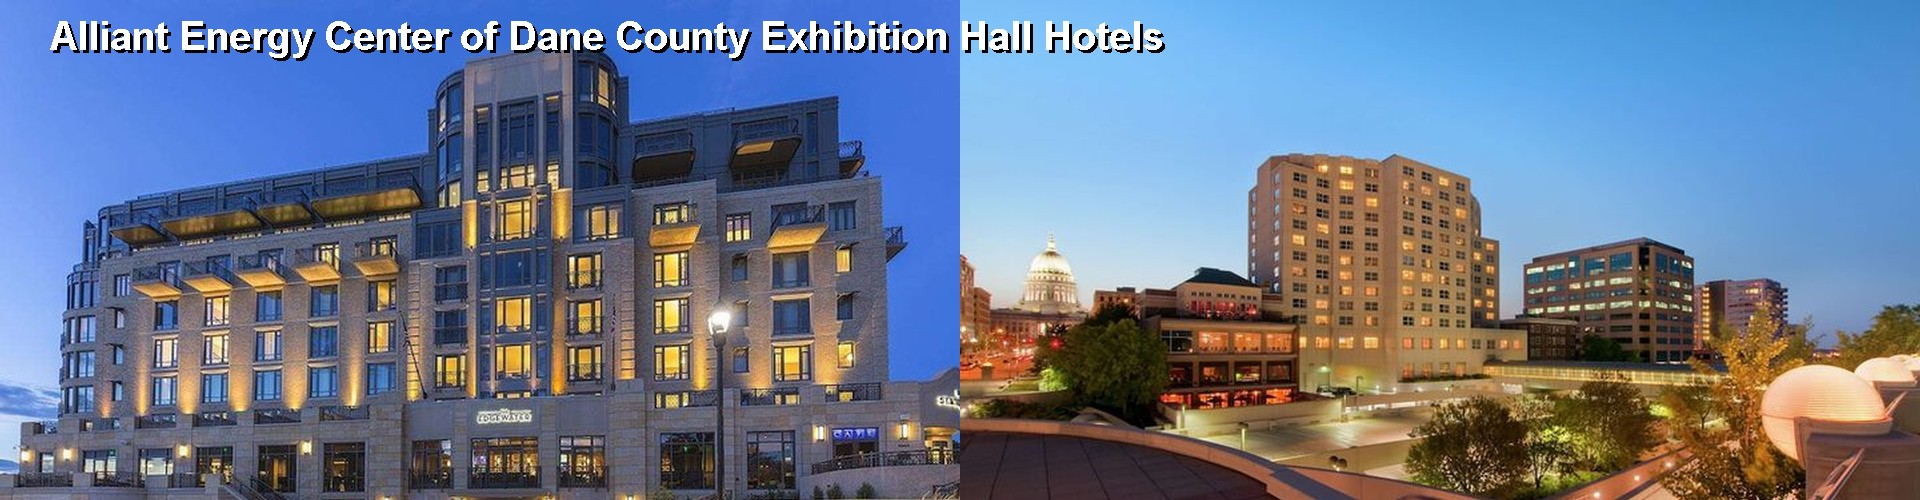 5 Best Hotels near Alliant Energy Center of Dane County Exhibition Hall